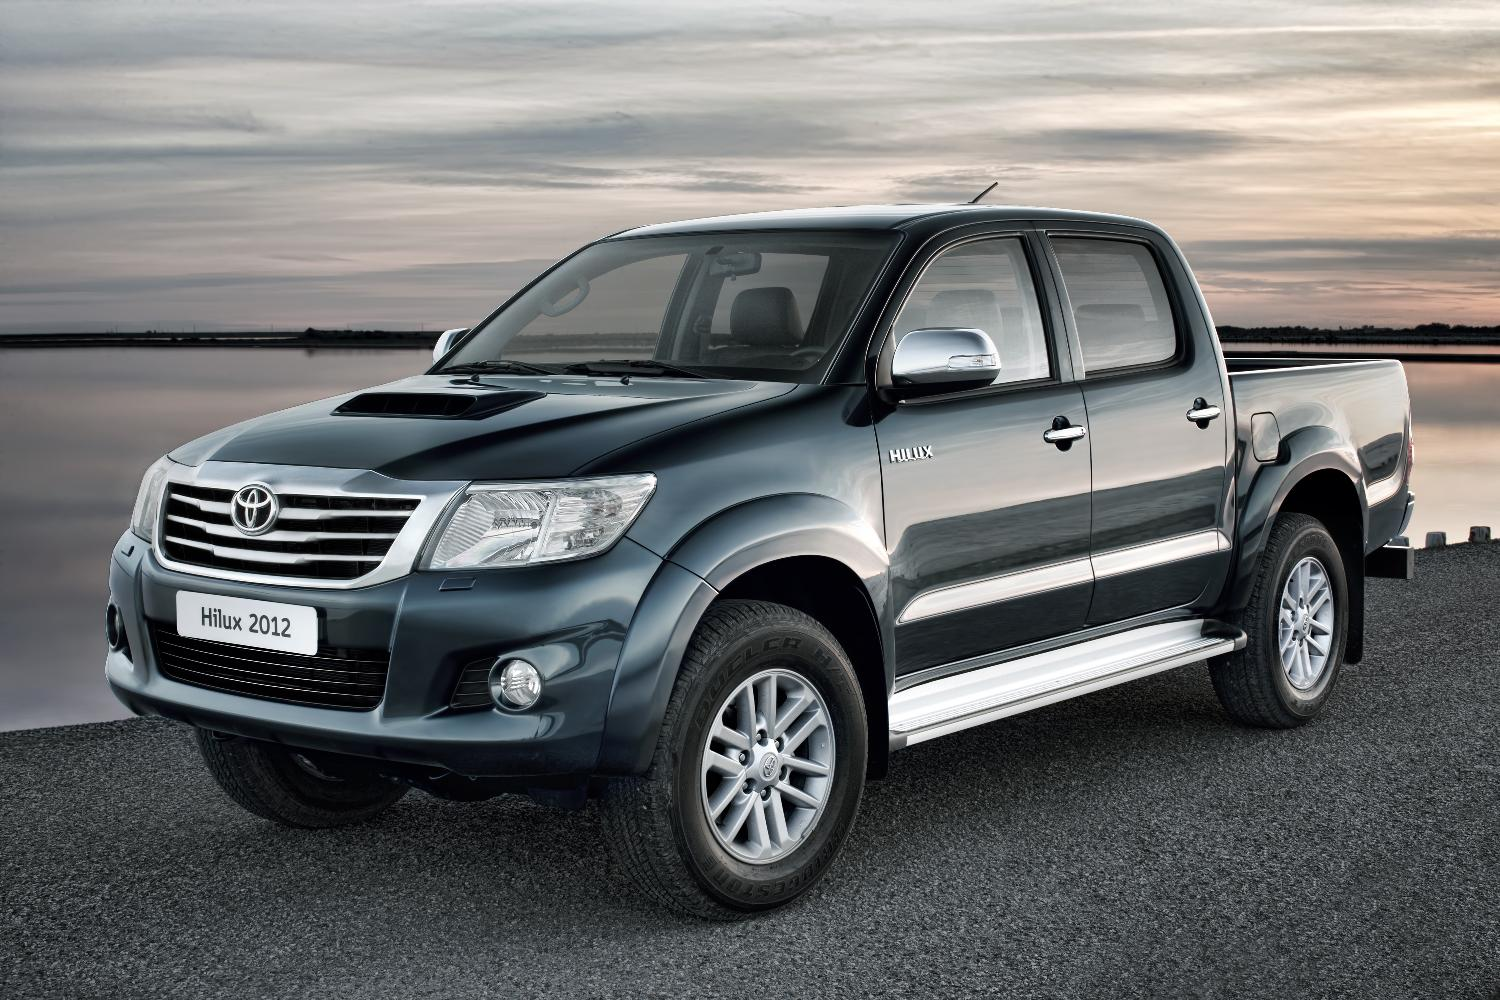 2012 Toyota Hilux Uk Pricing Announced Autoevolution